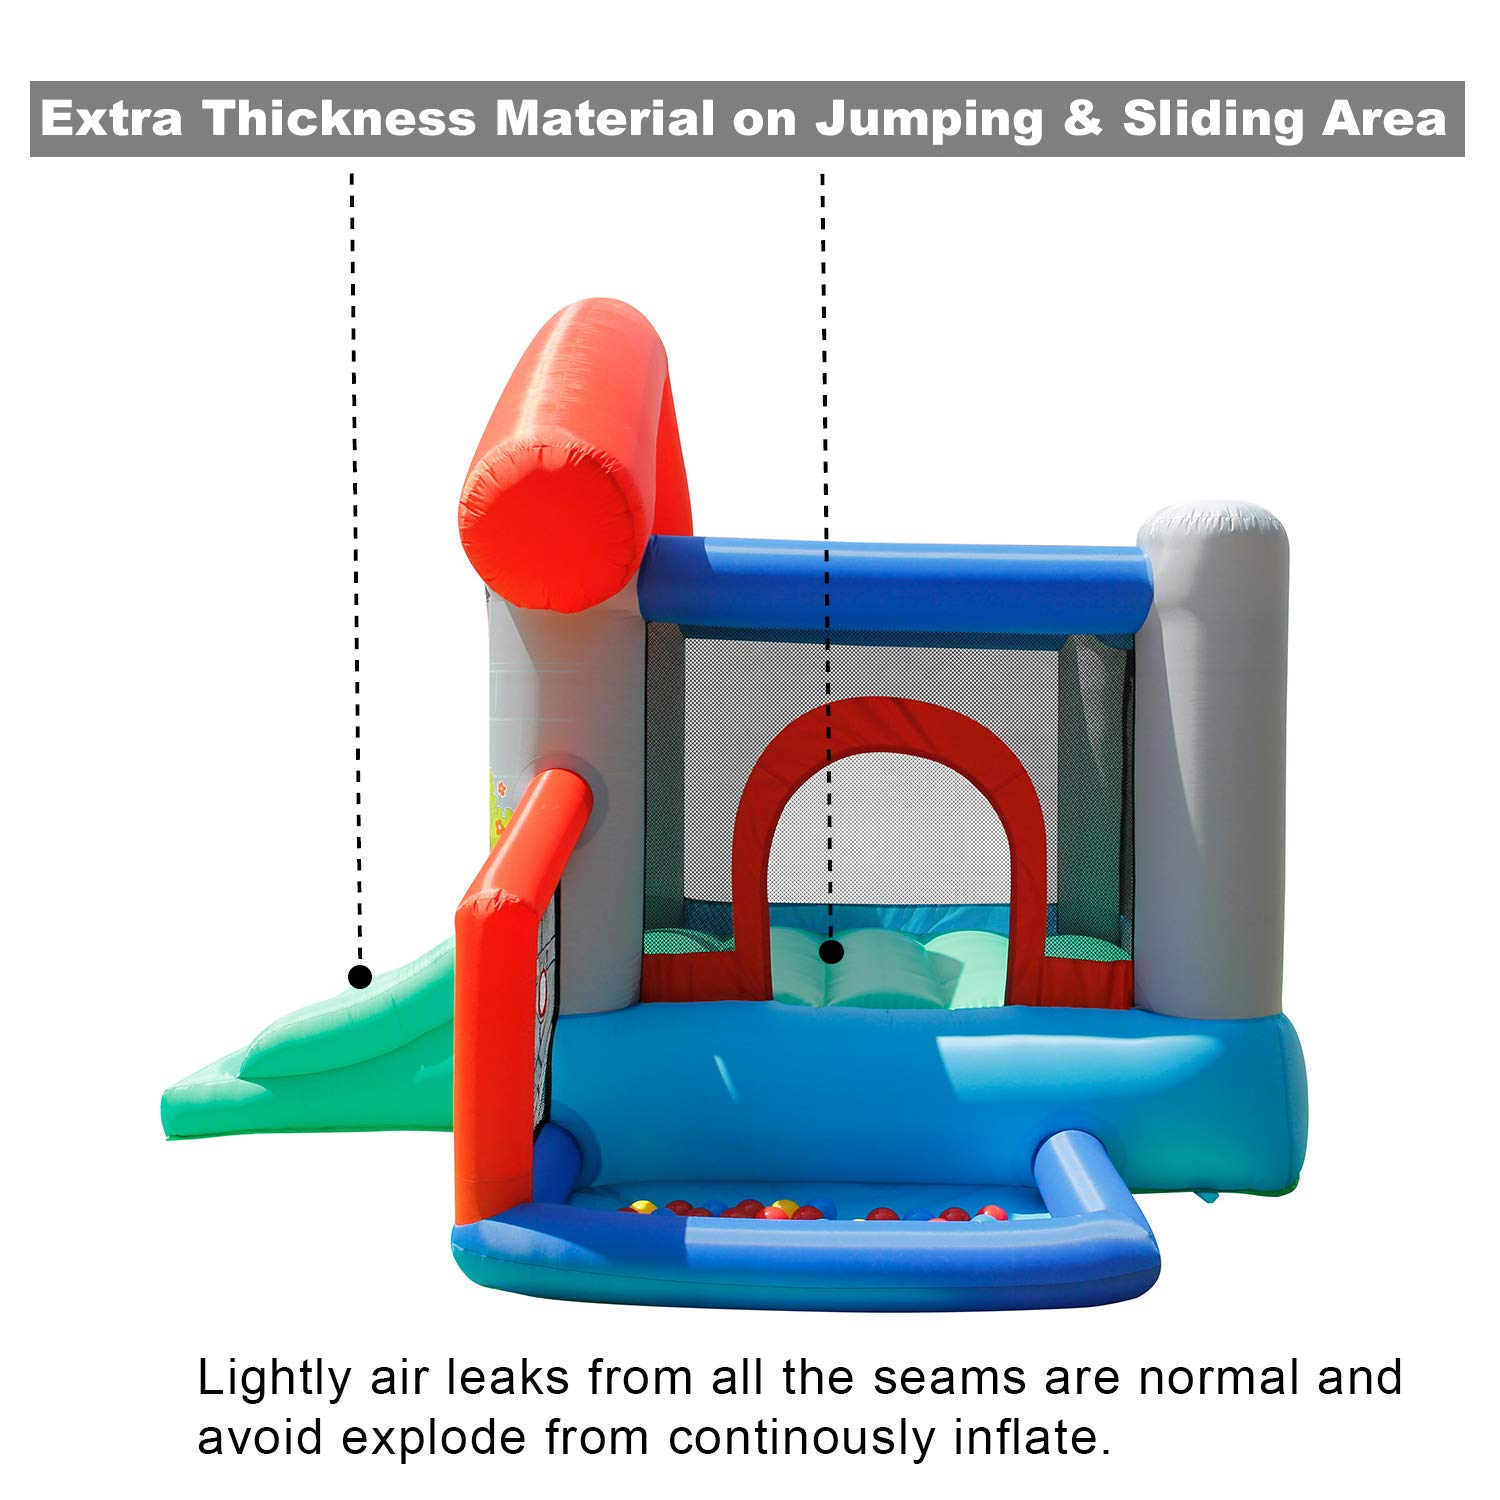 ACTION AIR Bounce House, Air Bouncer with 30 Ball, Inflatable Bouncer with Air Blower, Jumping Castle with Slide, for Outdoor and Indoor, Durable Sewn with Extra Thick Material, Idea for Kids by ACTION AIR (Image #2)